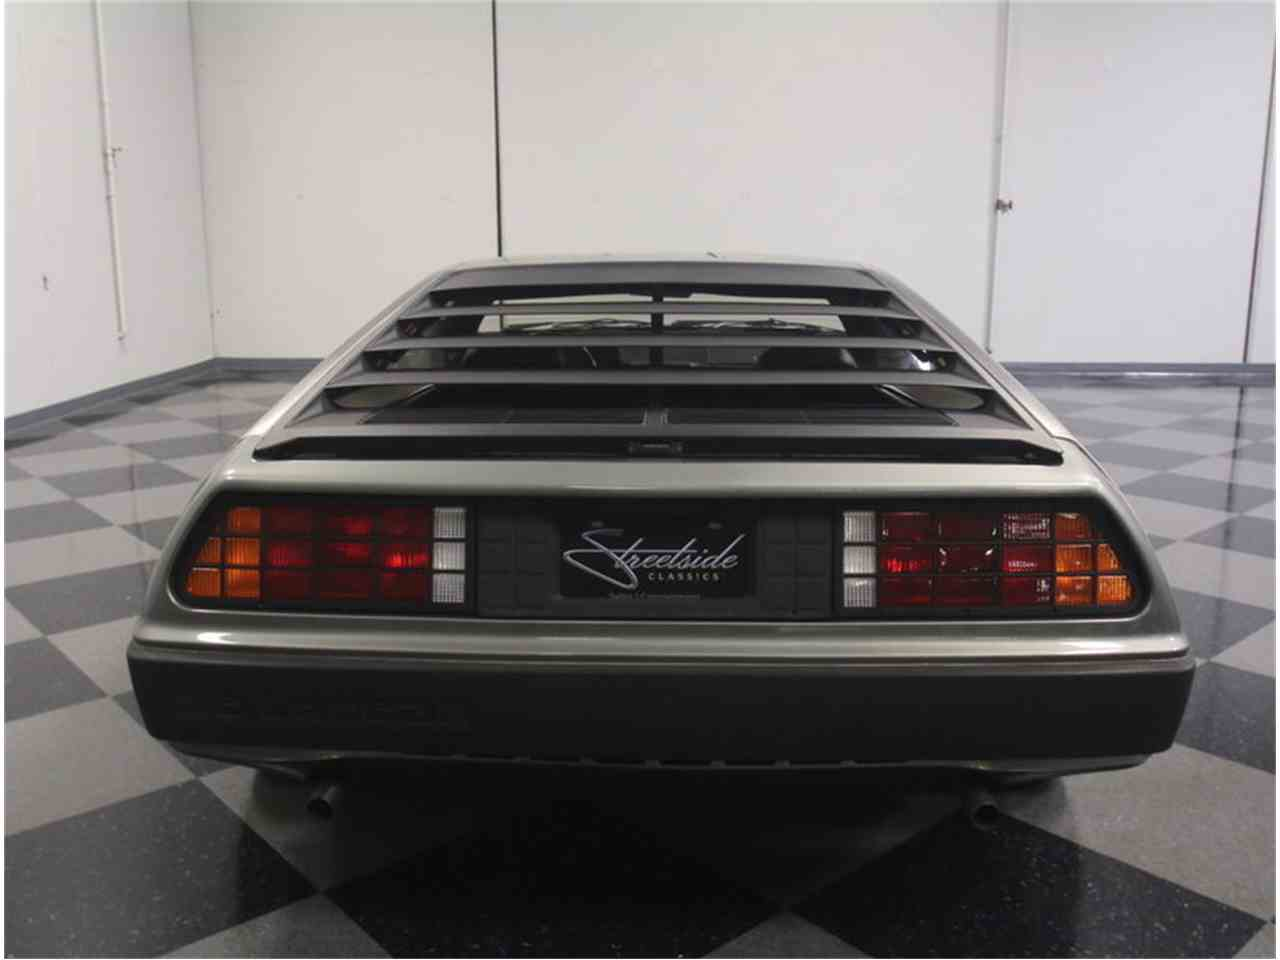 Large Picture of '81 DeLorean DMC-12 - $49,995.00 - MGXM